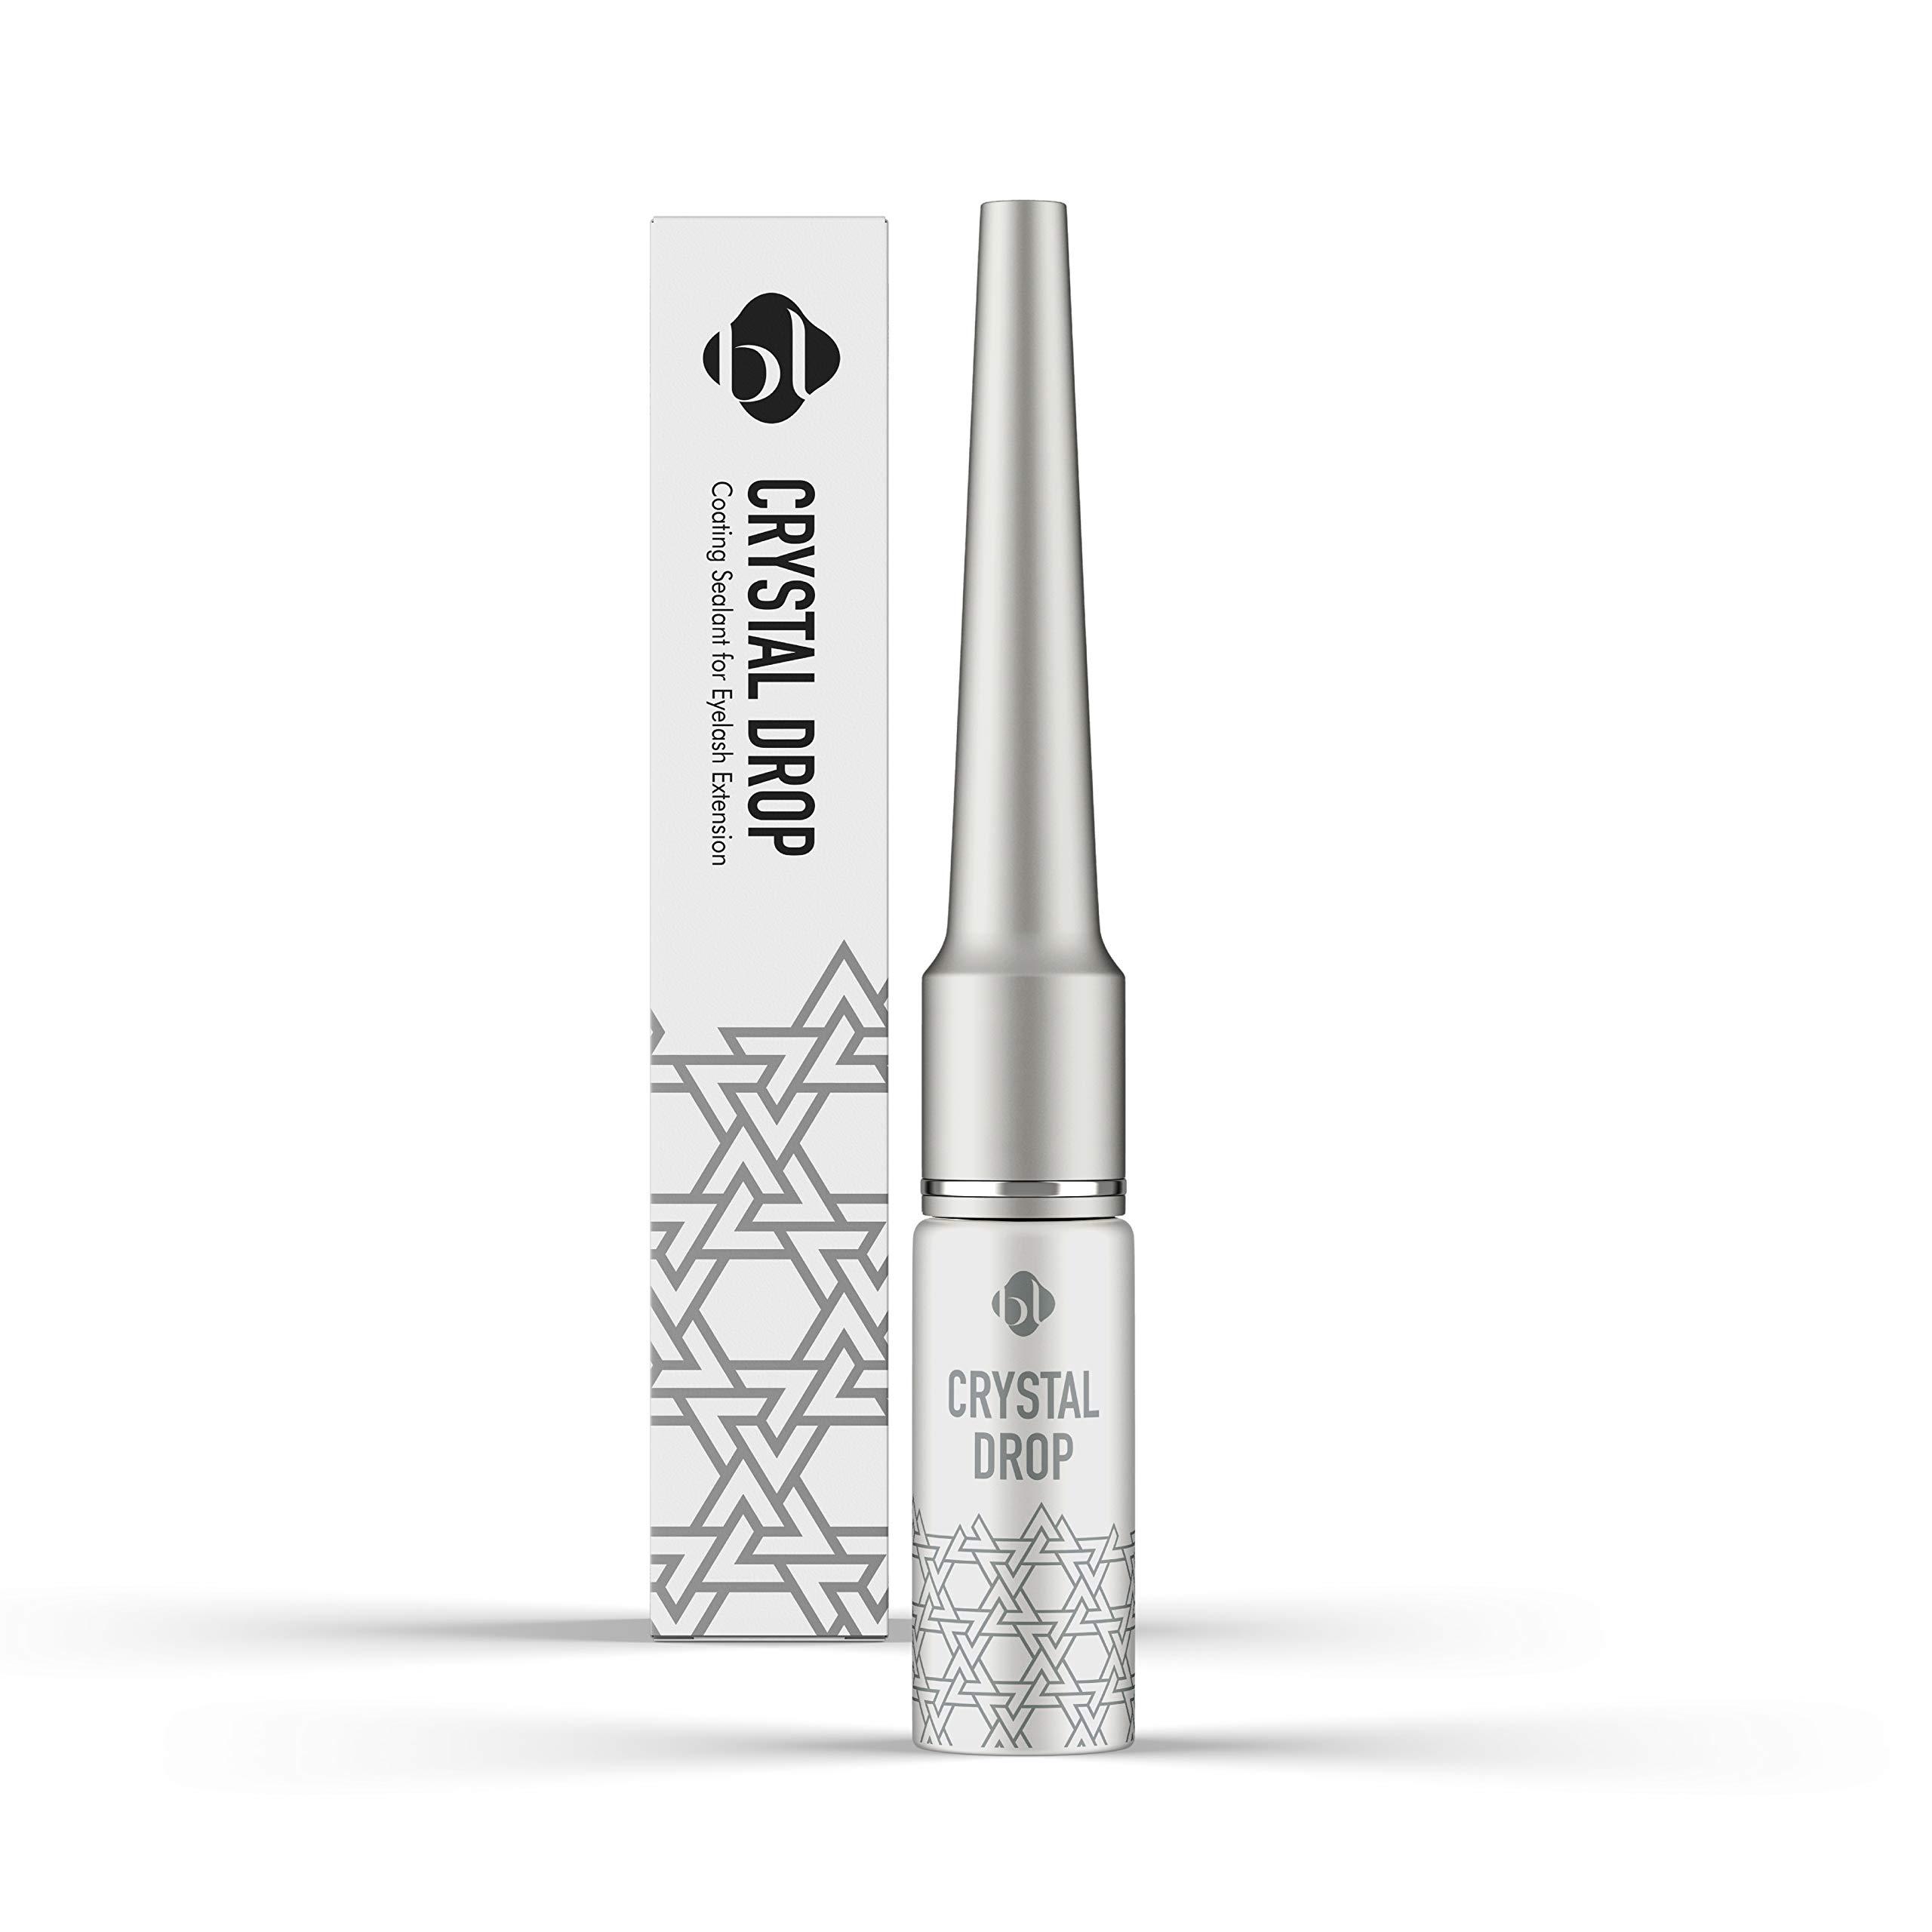 Crystal Drop clear eyelash coating sealant for eyelash extension aftercare | Better retention and eyelash growth | Clear lash sealer, 7ml